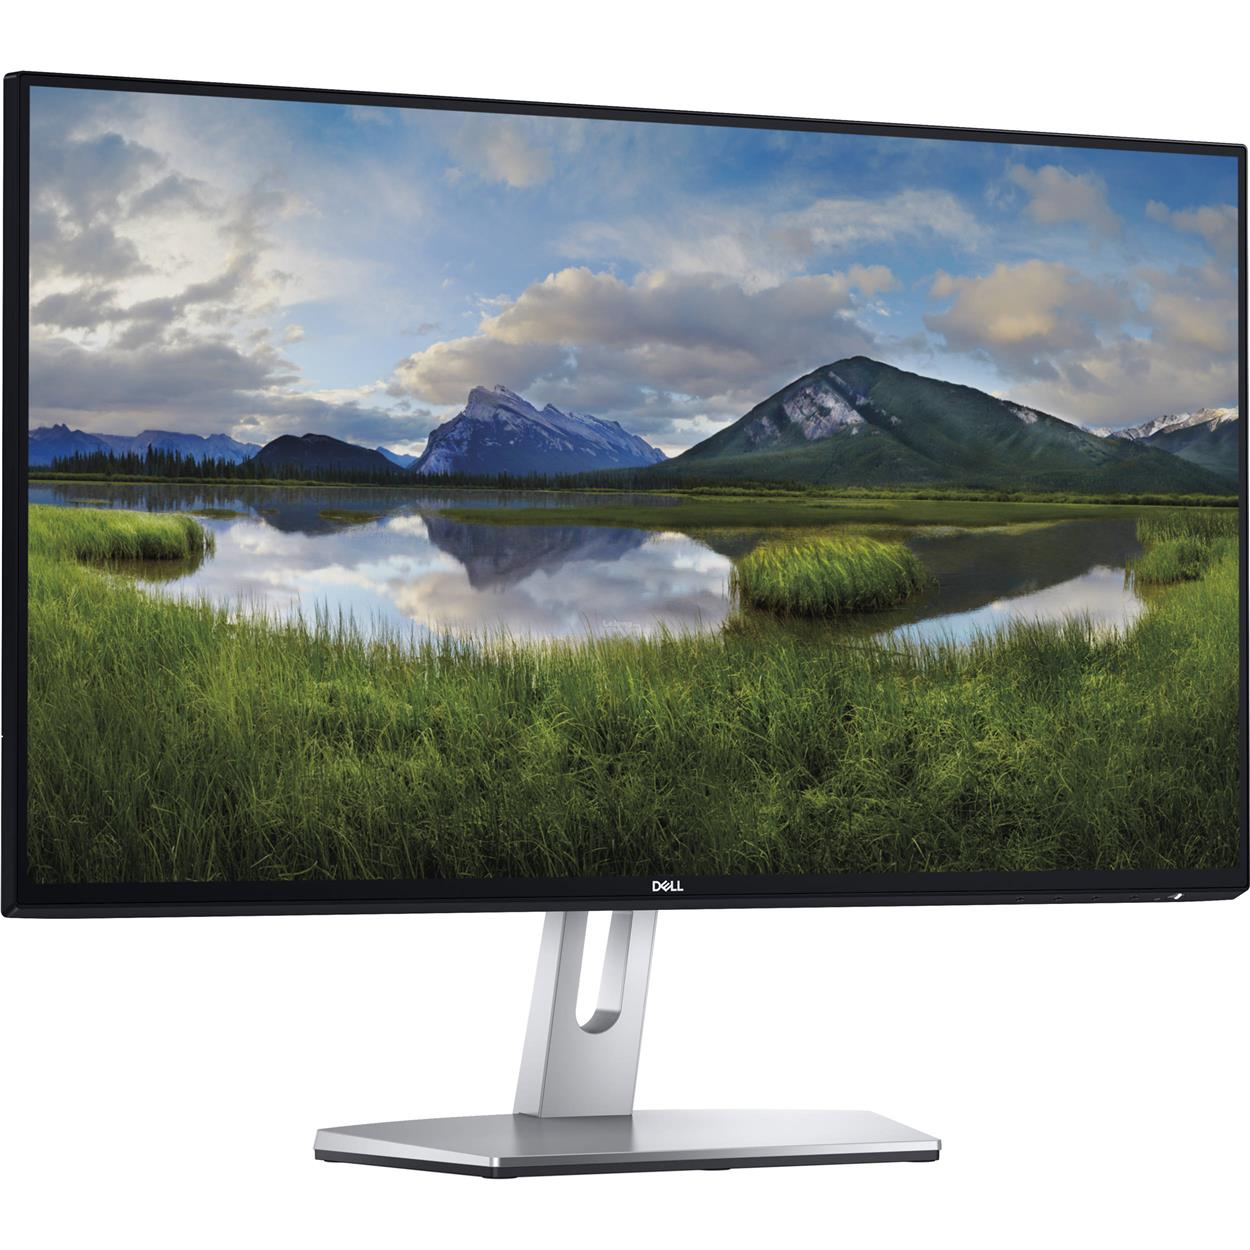 "Dell S2419H 24"" Full HD IPS LED Monitor (1920 X 1080)"